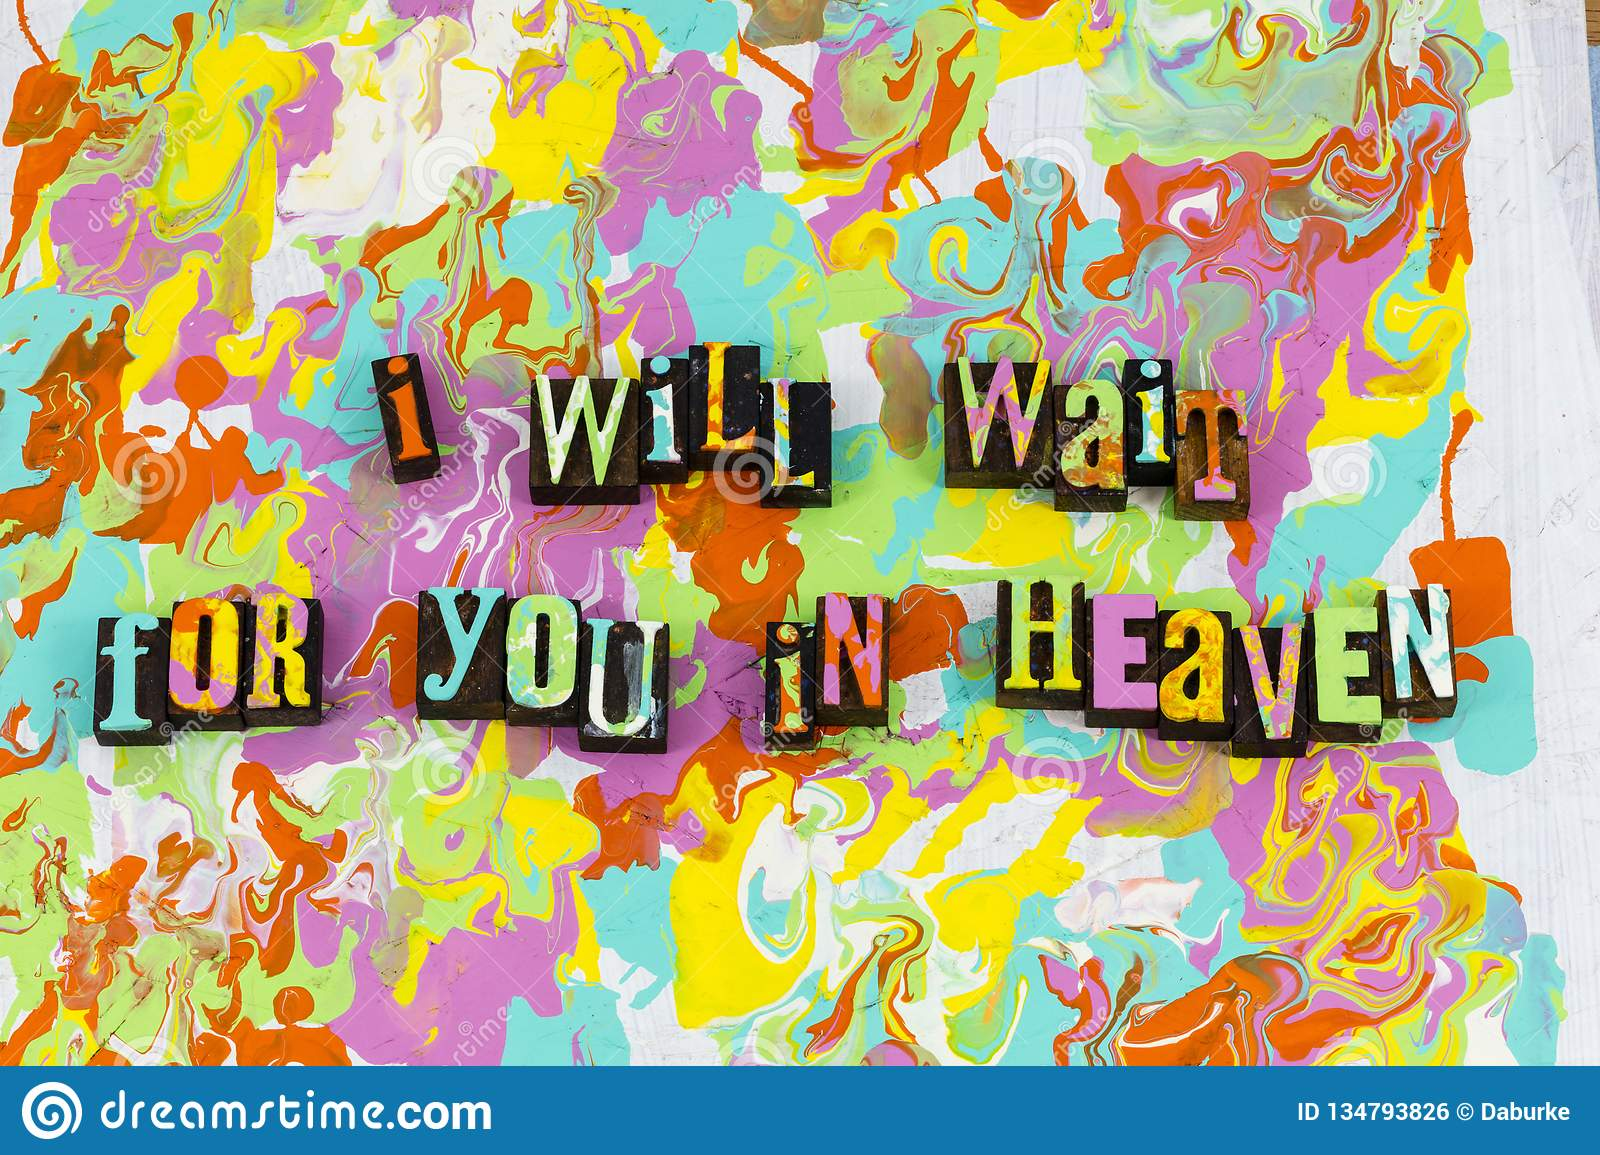 Wait Heaven Love Relationship Together Stock Photo - Image